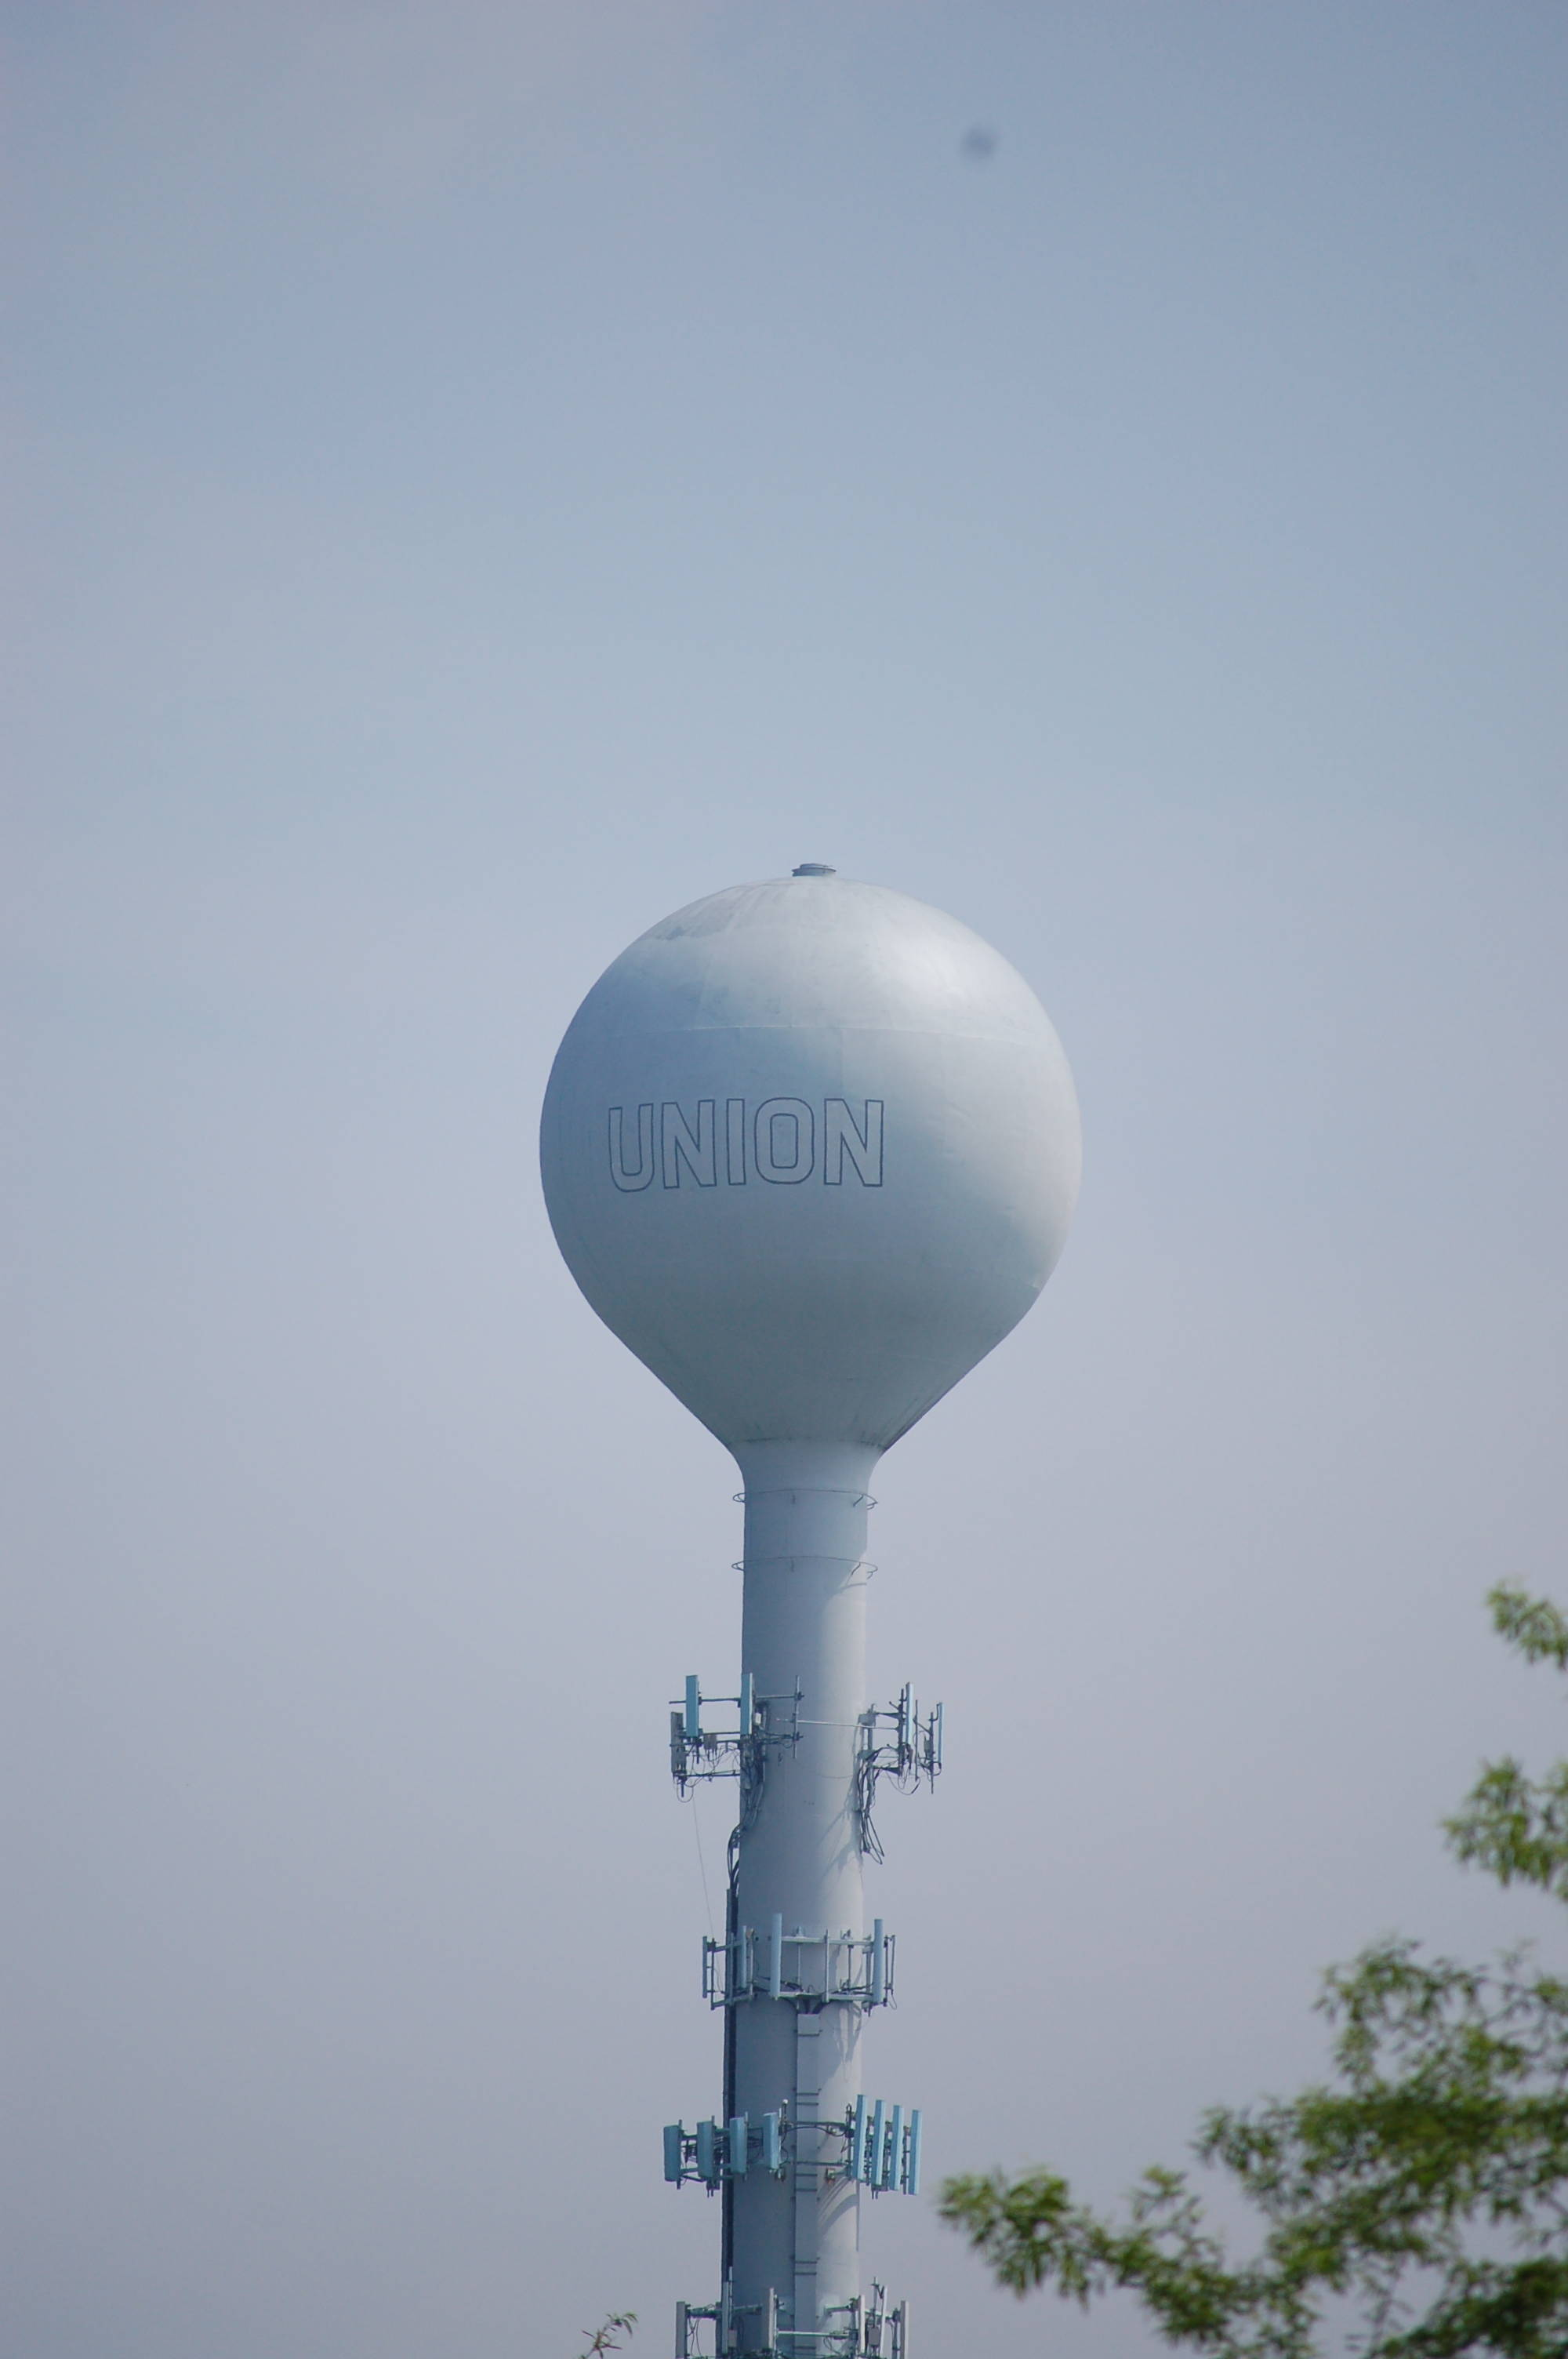 e496d9e3d6ca963571e5_f69cf31687fdb10213e8_union_water_tower.jpg